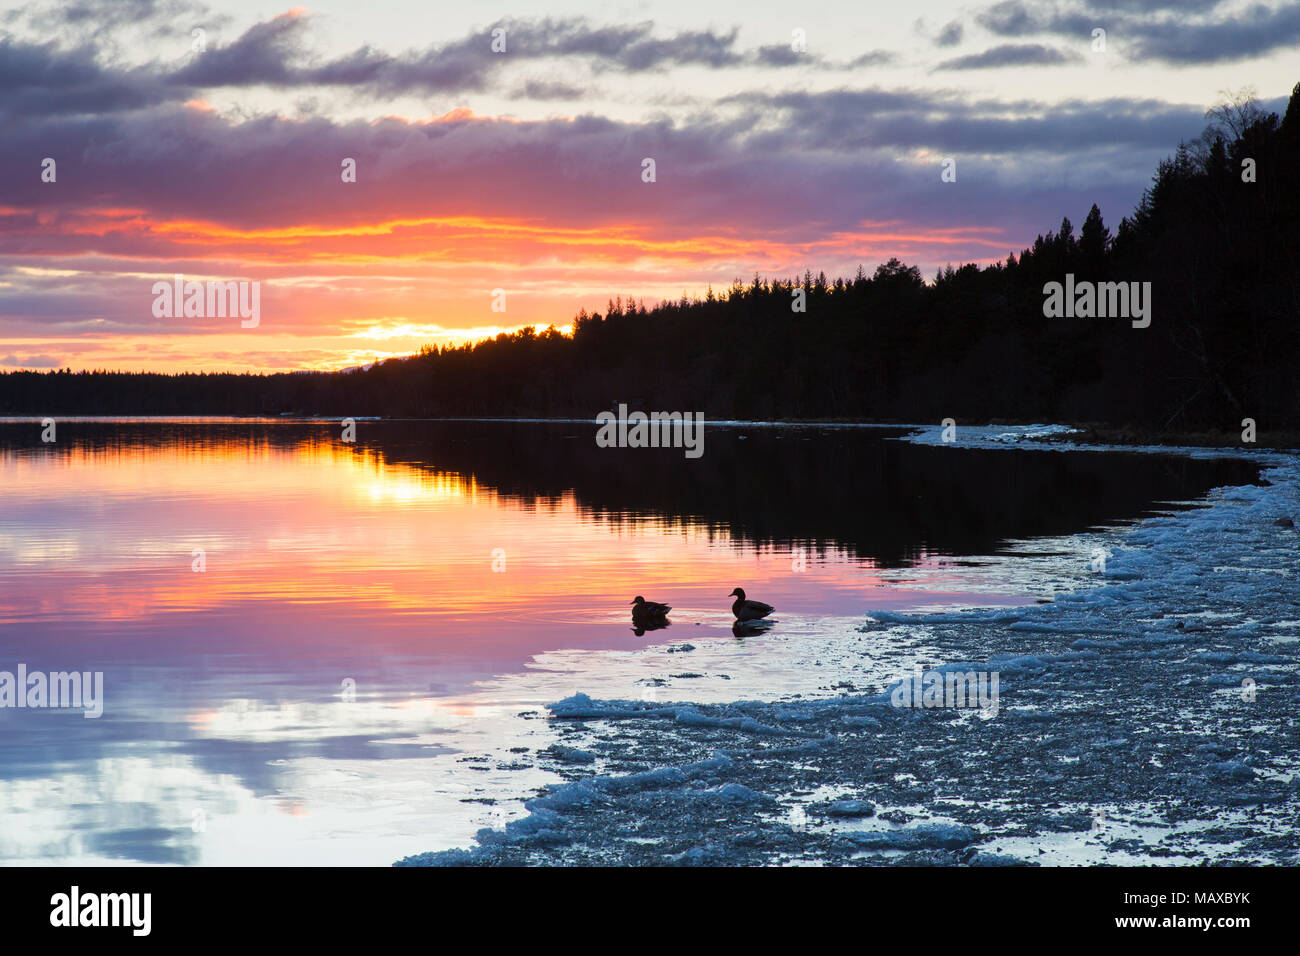 Loch Morlich at sunset in winter, Cairngorms National Park, Badenoch and Strathspey, Highland, Scotland, UK Stock Photo